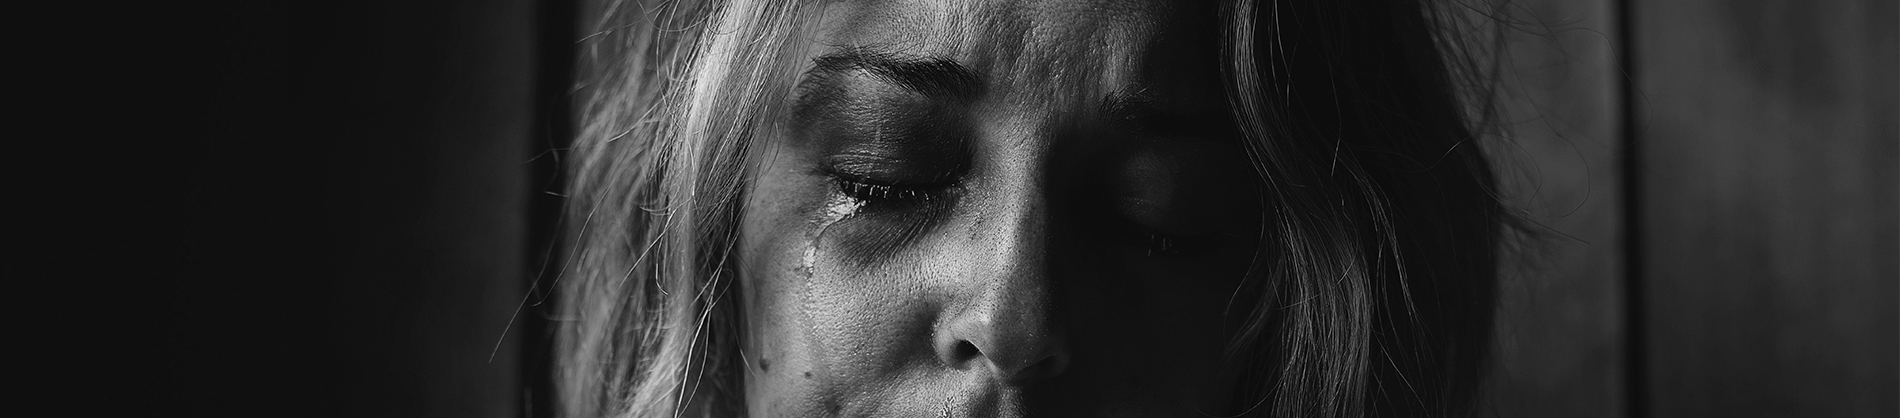 A women with tears coming down her face